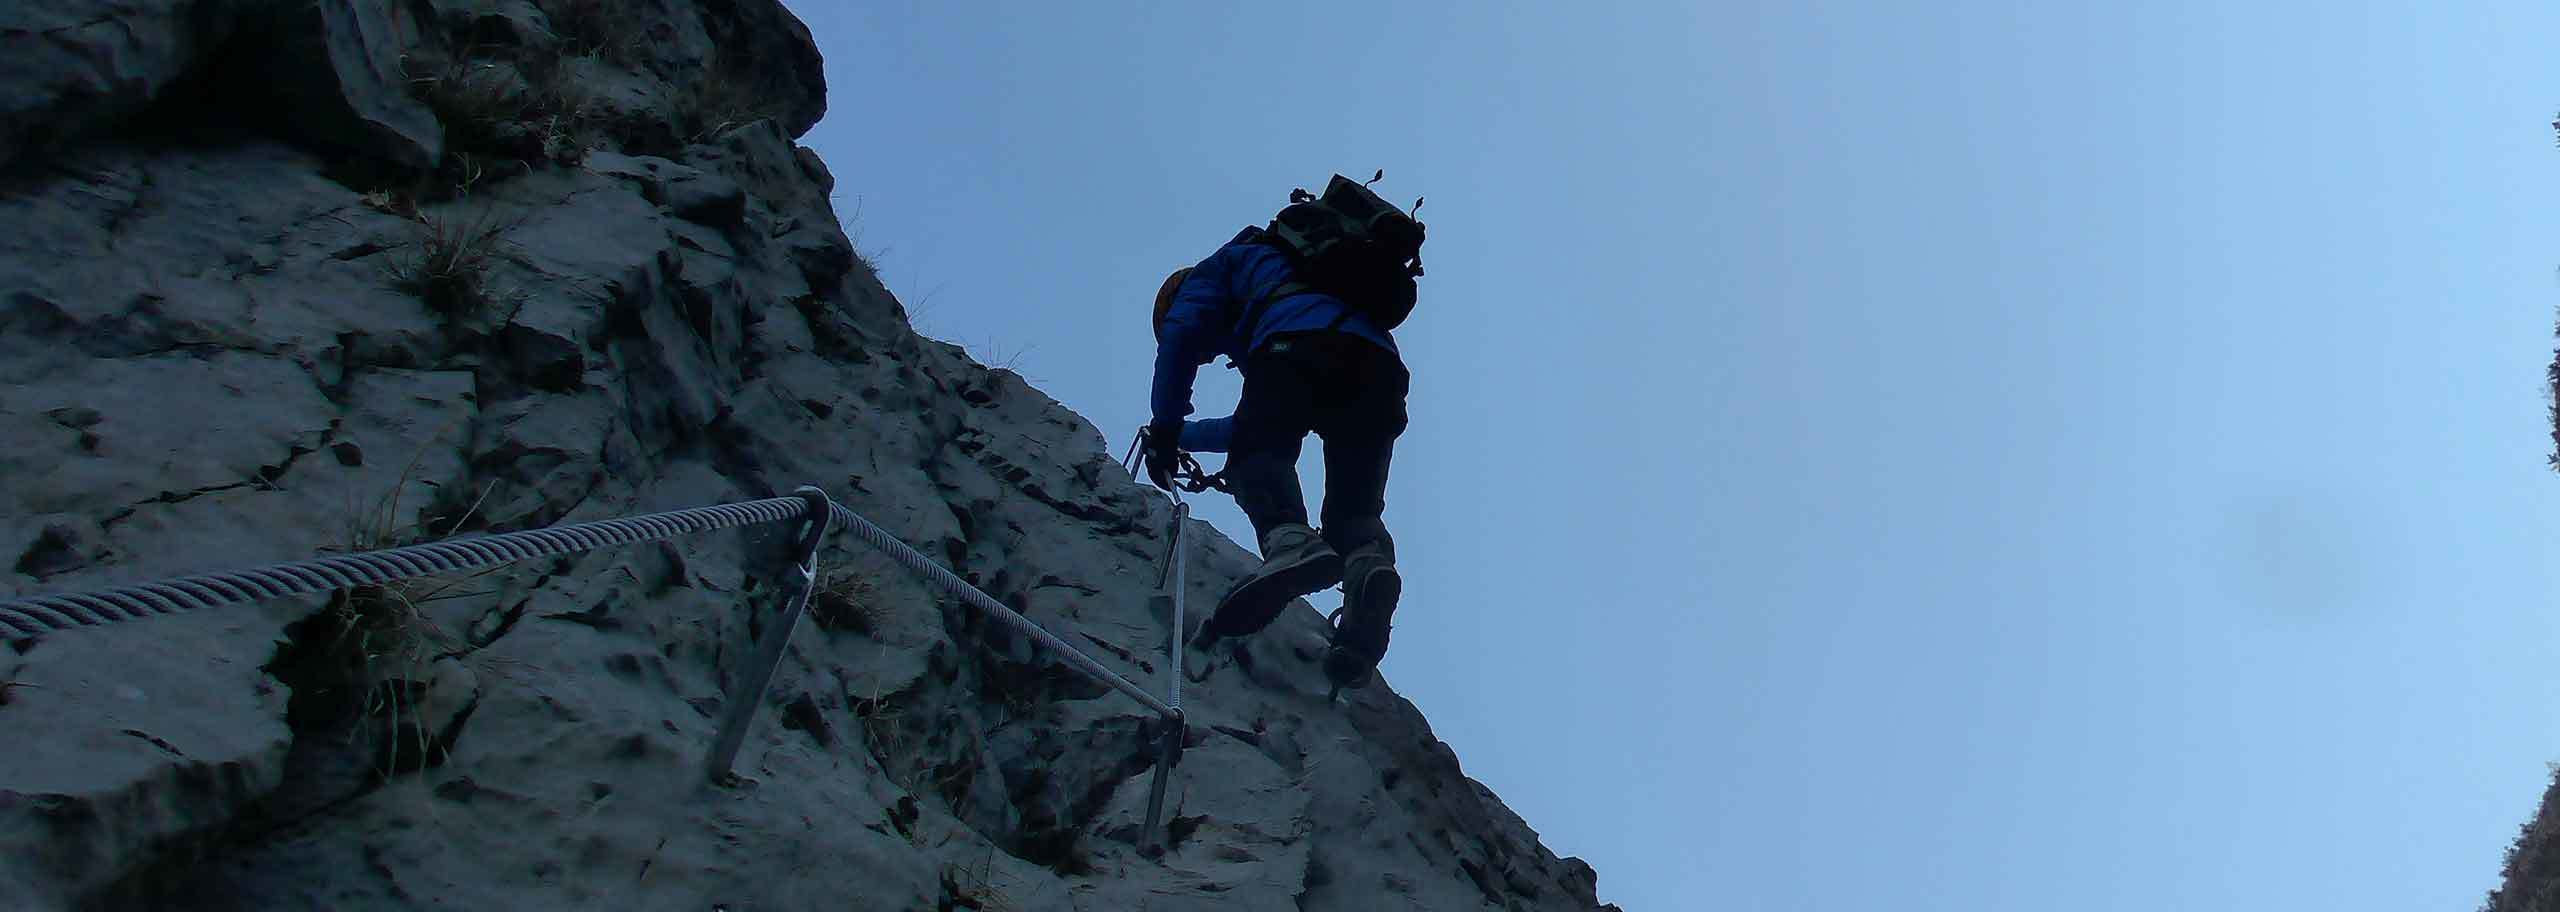 Via Ferrata in Limone Piemonte with Mountain Guide